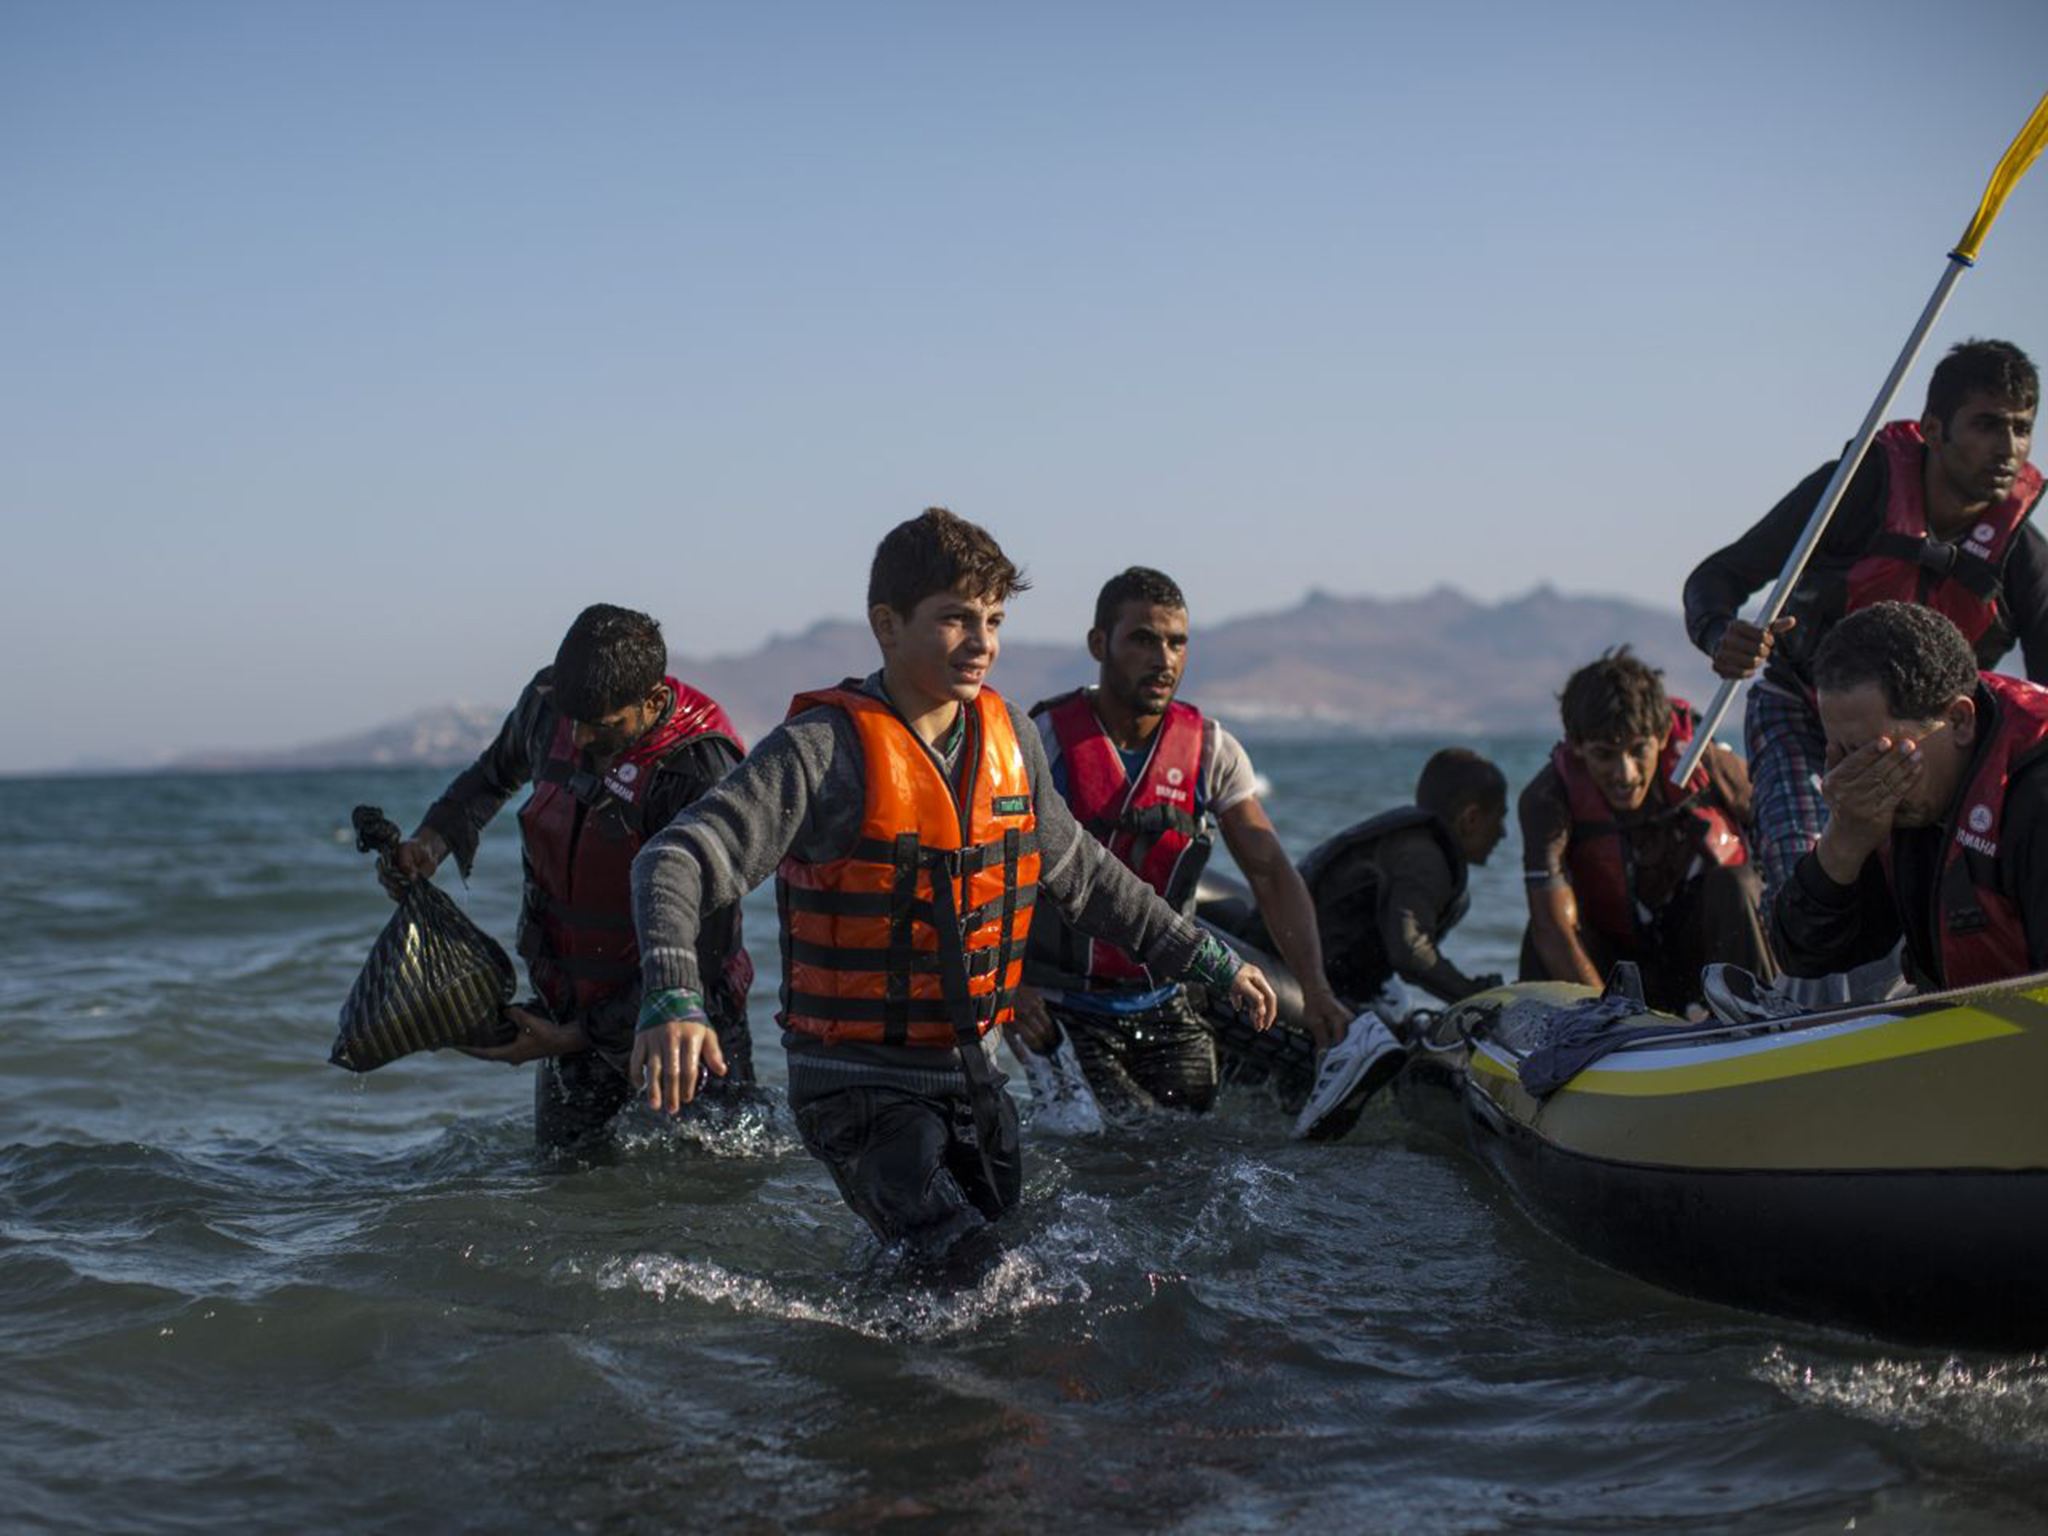 Refugees arrive on the shores of Kos, Greece. Source: The Independent